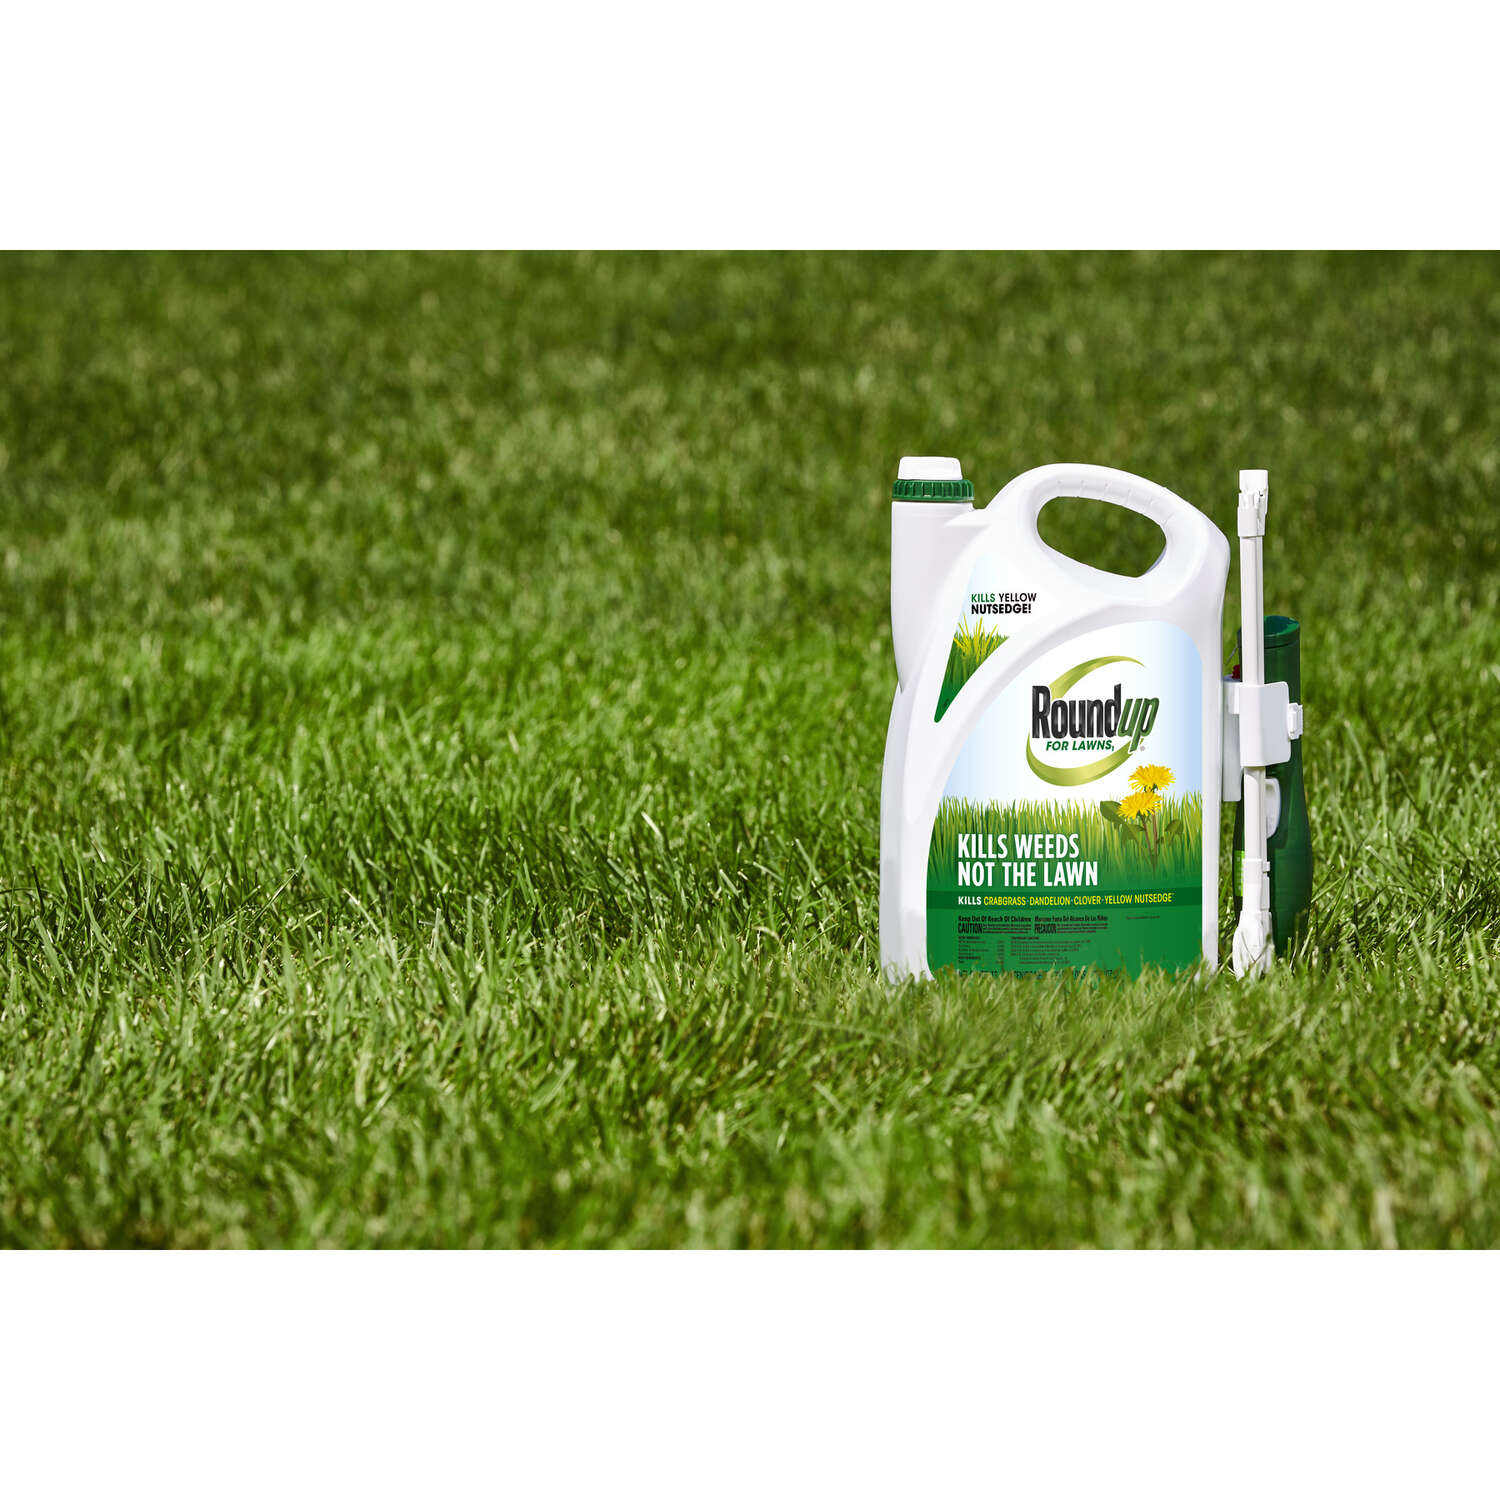 Roundup  For Lawns  RTU Liquid  Weed Killer  1.33 gal.